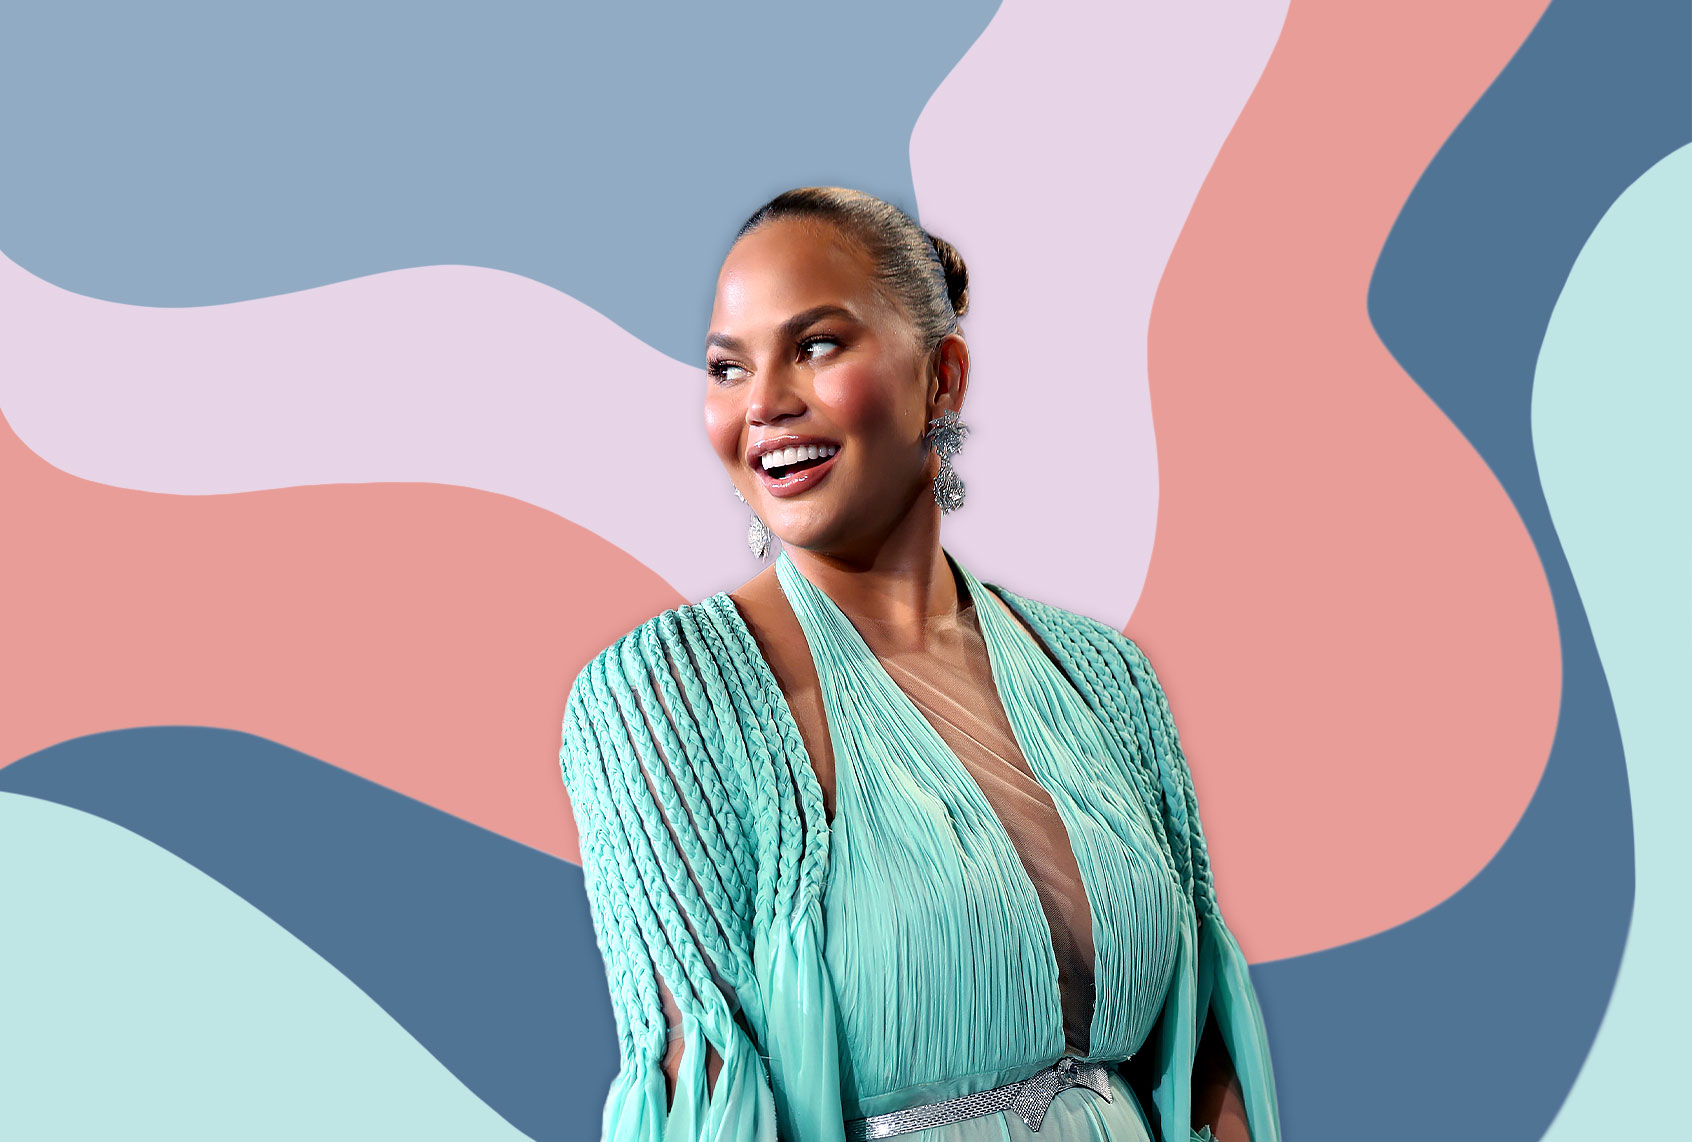 <p>Chrissy Teigen shares her 1-dough-3-cookies recipe for holiday baking thumbnail